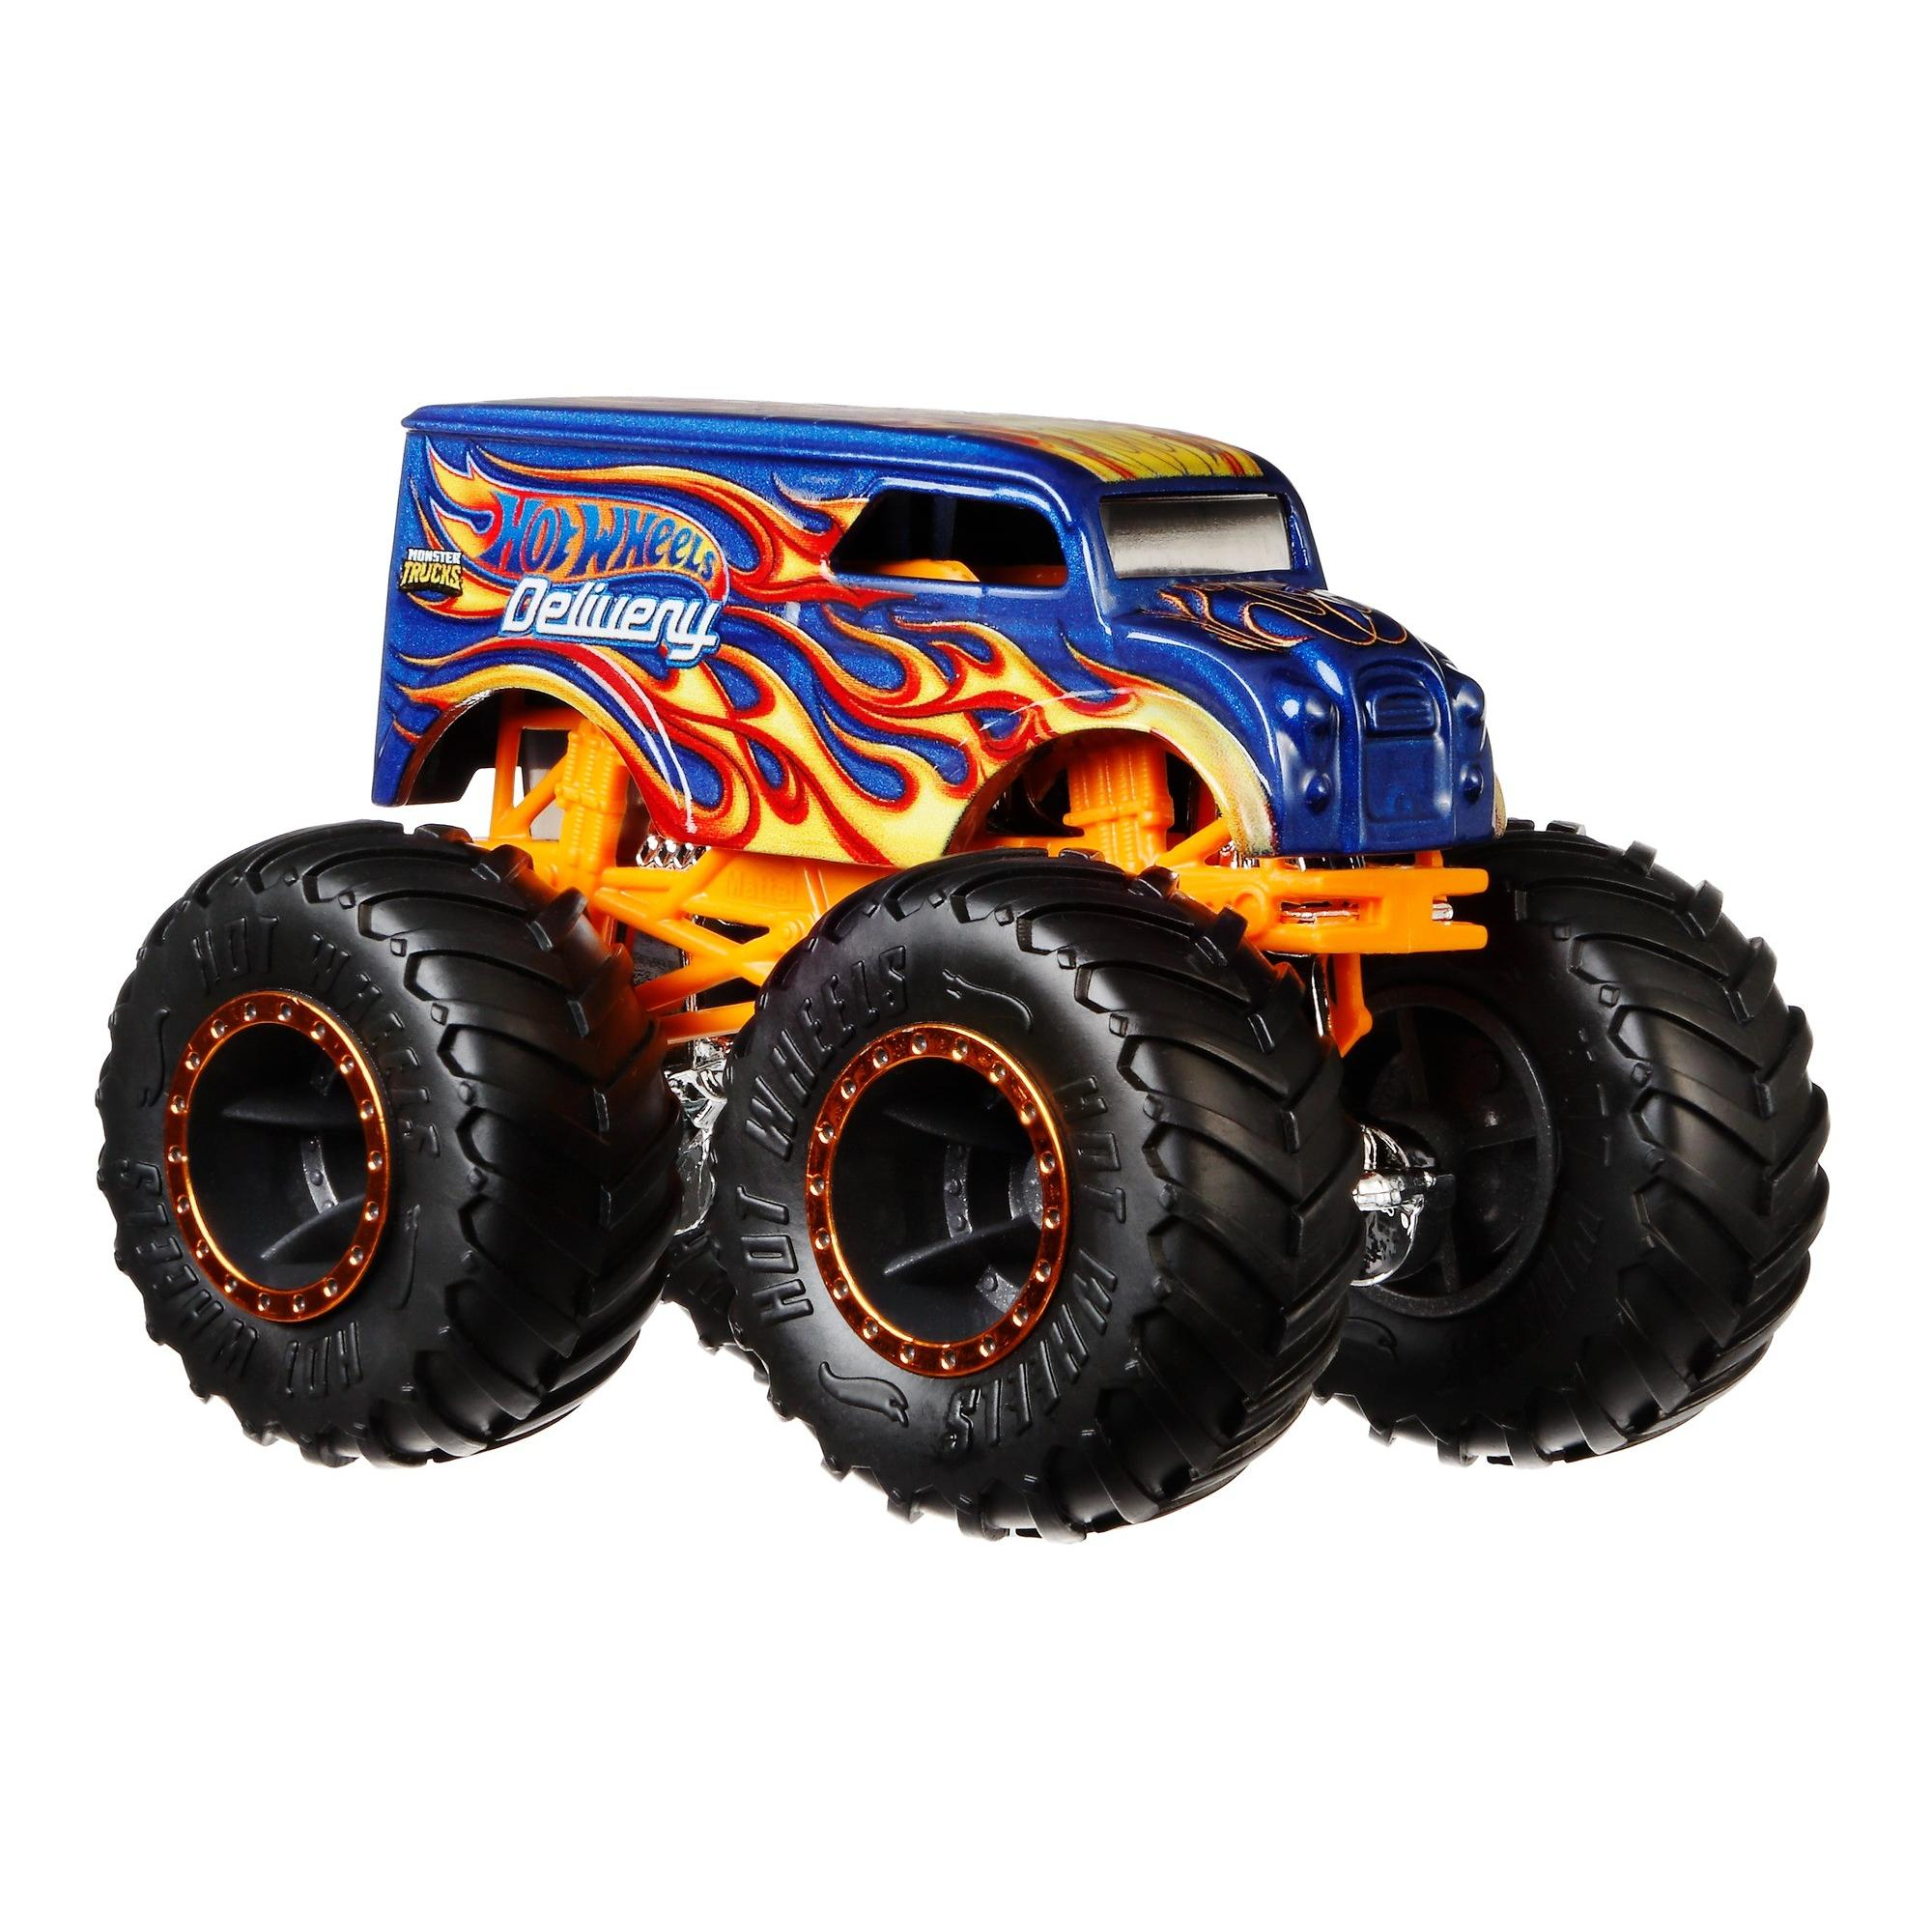 Hot Wheels Monster Trucks Die Cast Vehicle Styles May Vary Walmart Com Walmart Com